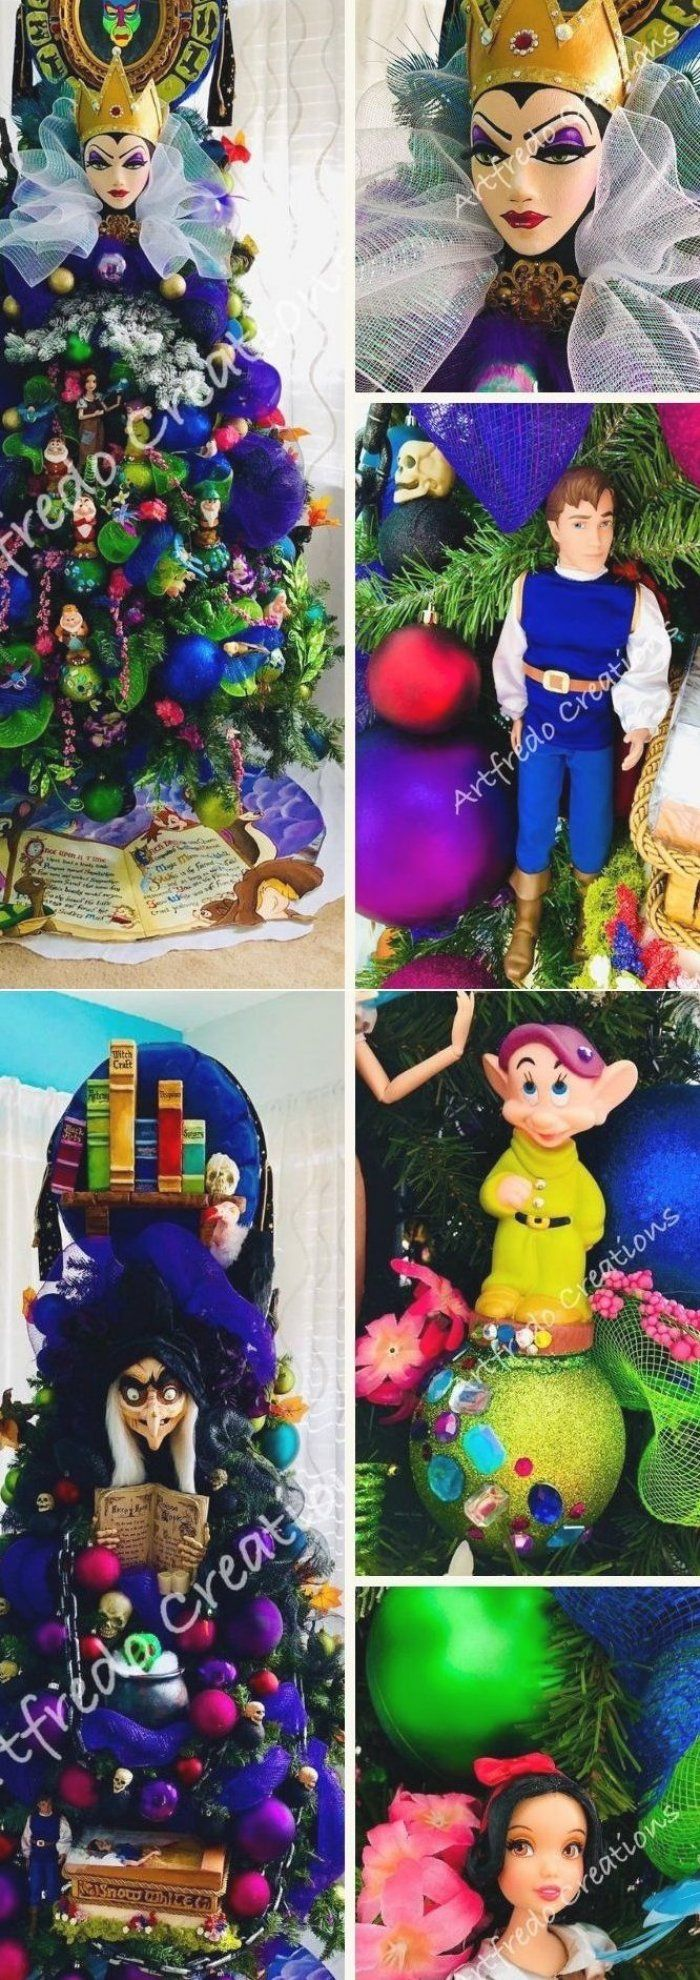 Most of the decorations for the Disney-themed Christmas tree are handmade  sculpted and painted  except for the dwarfs    #disneyinspiredchristmastree #christmastree #disneychristmastree #christmastreedecoration #christmasdecoration #snowhite #disney